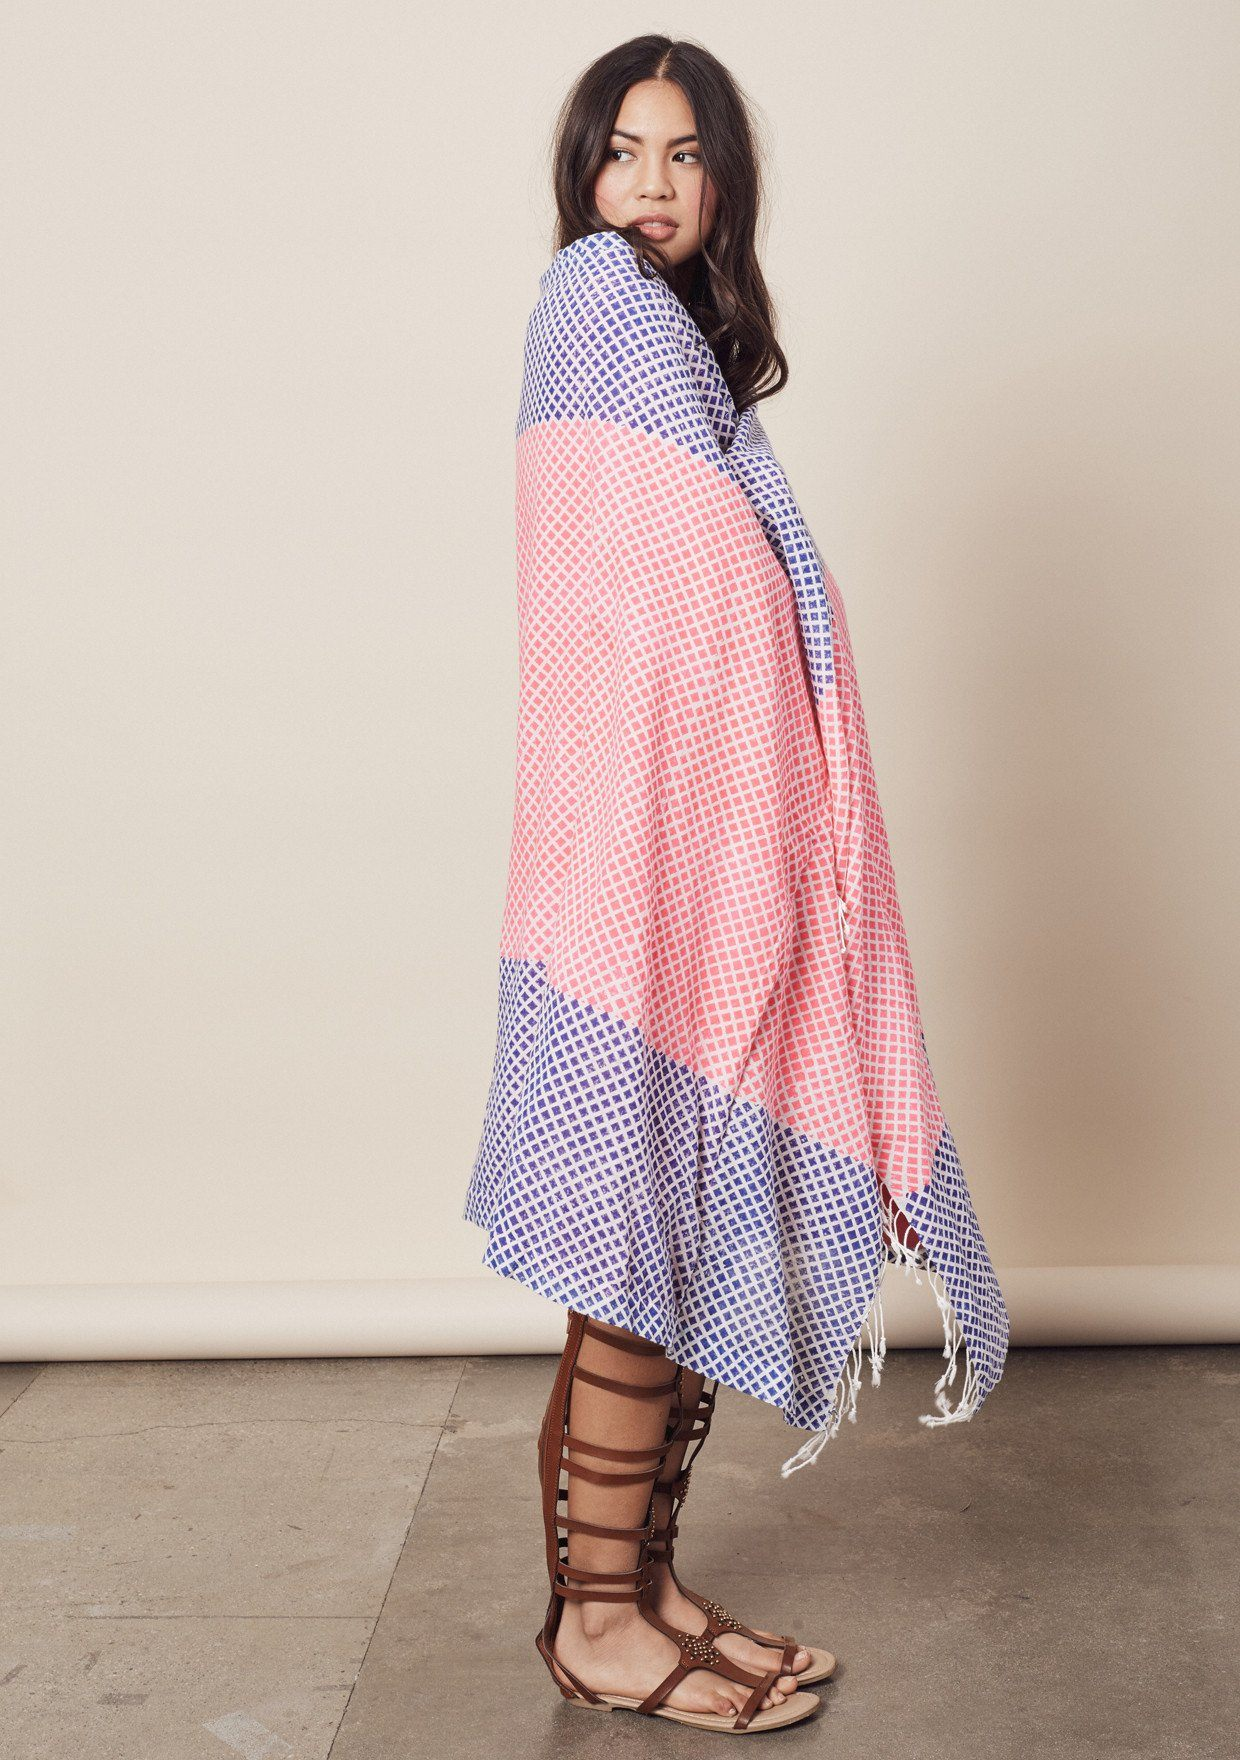 [Color: HotPink/Cobalt] Lovestitch pink & blue, mini diamond border, block printed beach towel/blanket, made in soft cotton and Turkish terry cloth with fringe edge.